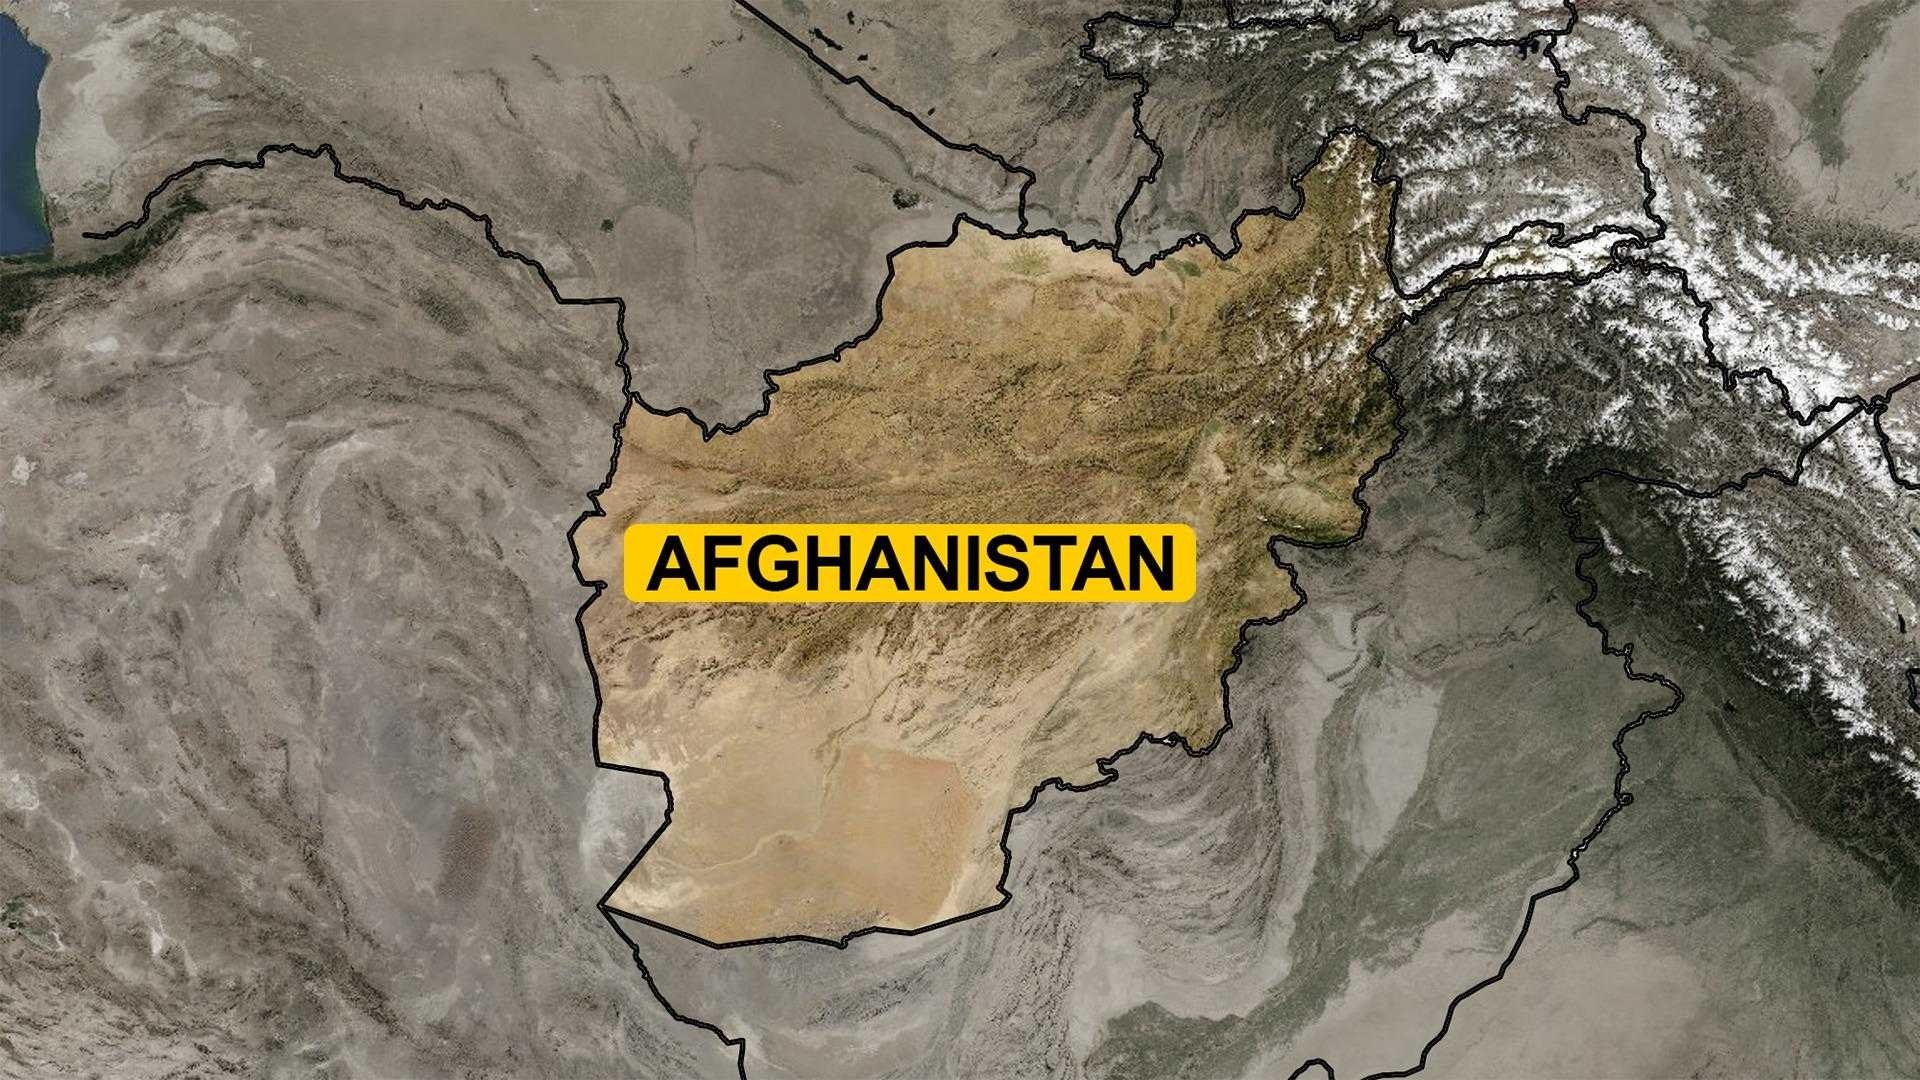 US Service Member Killed, Four Others Injured In Afghanistan 'Combat Engagement'